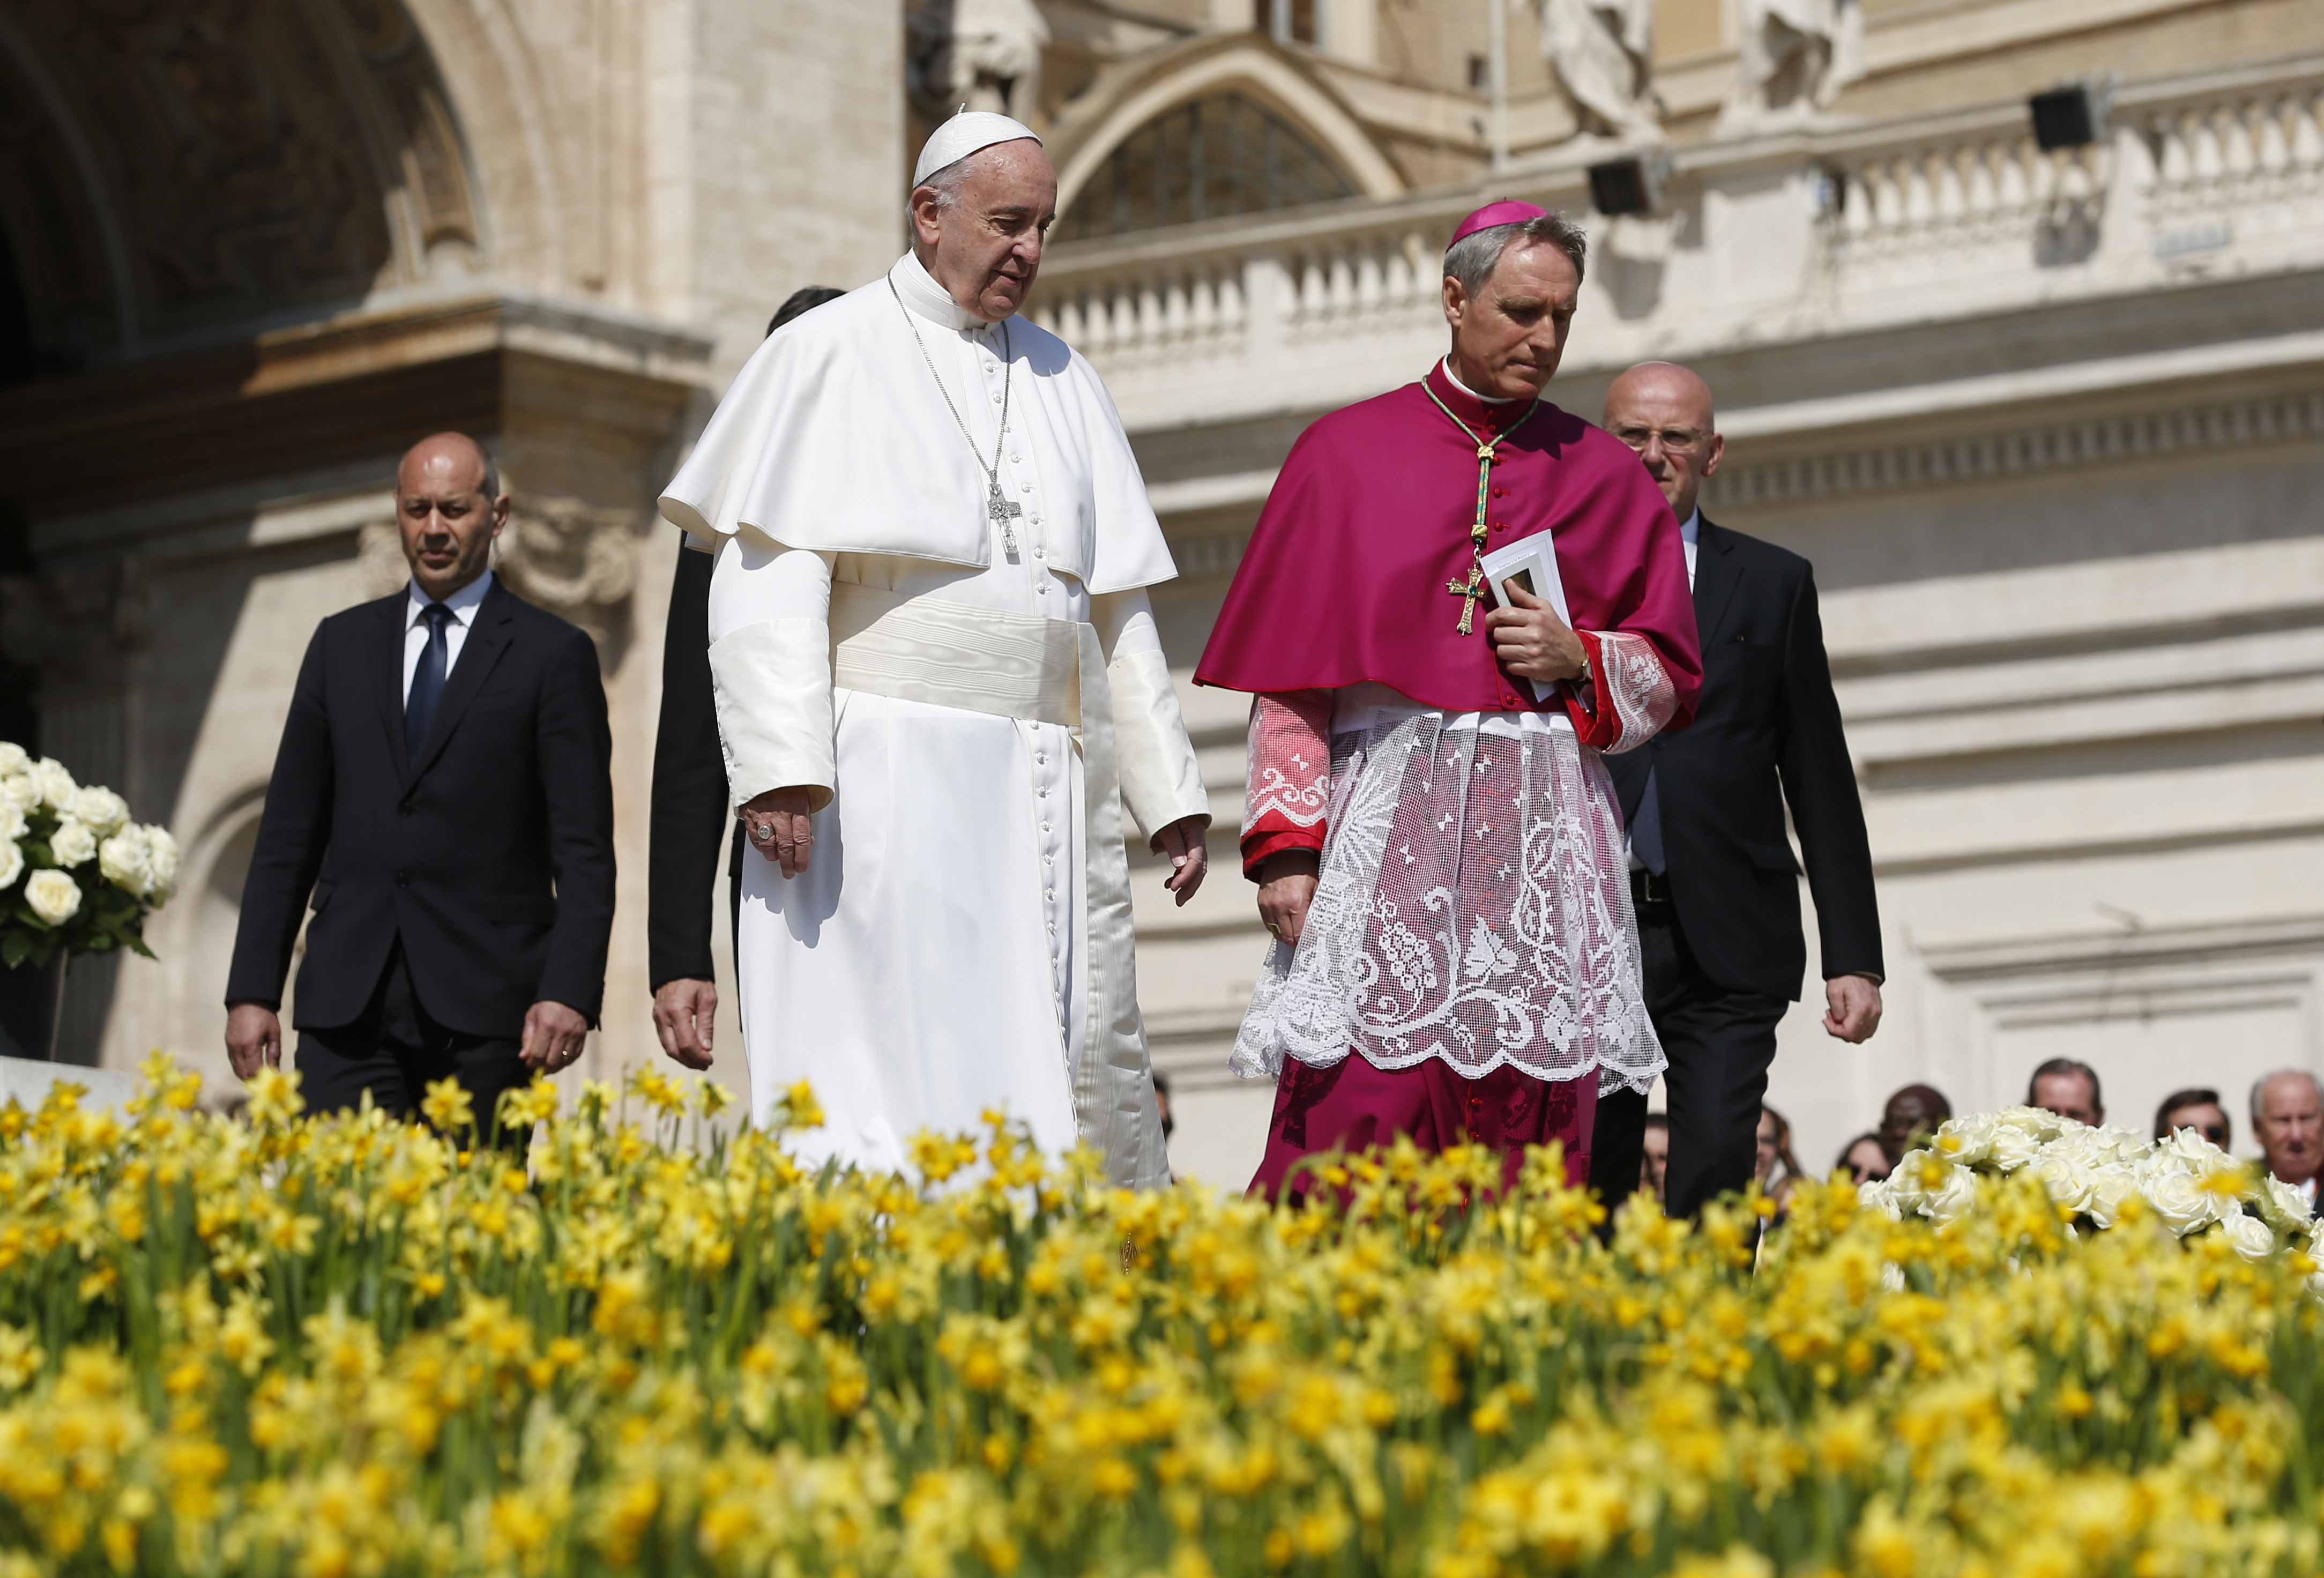 Pope francis in his easter message offers words of hope to a pope francis walks past flowers as he prepares to greet the crowd at the conclusion of kristyandbryce Image collections